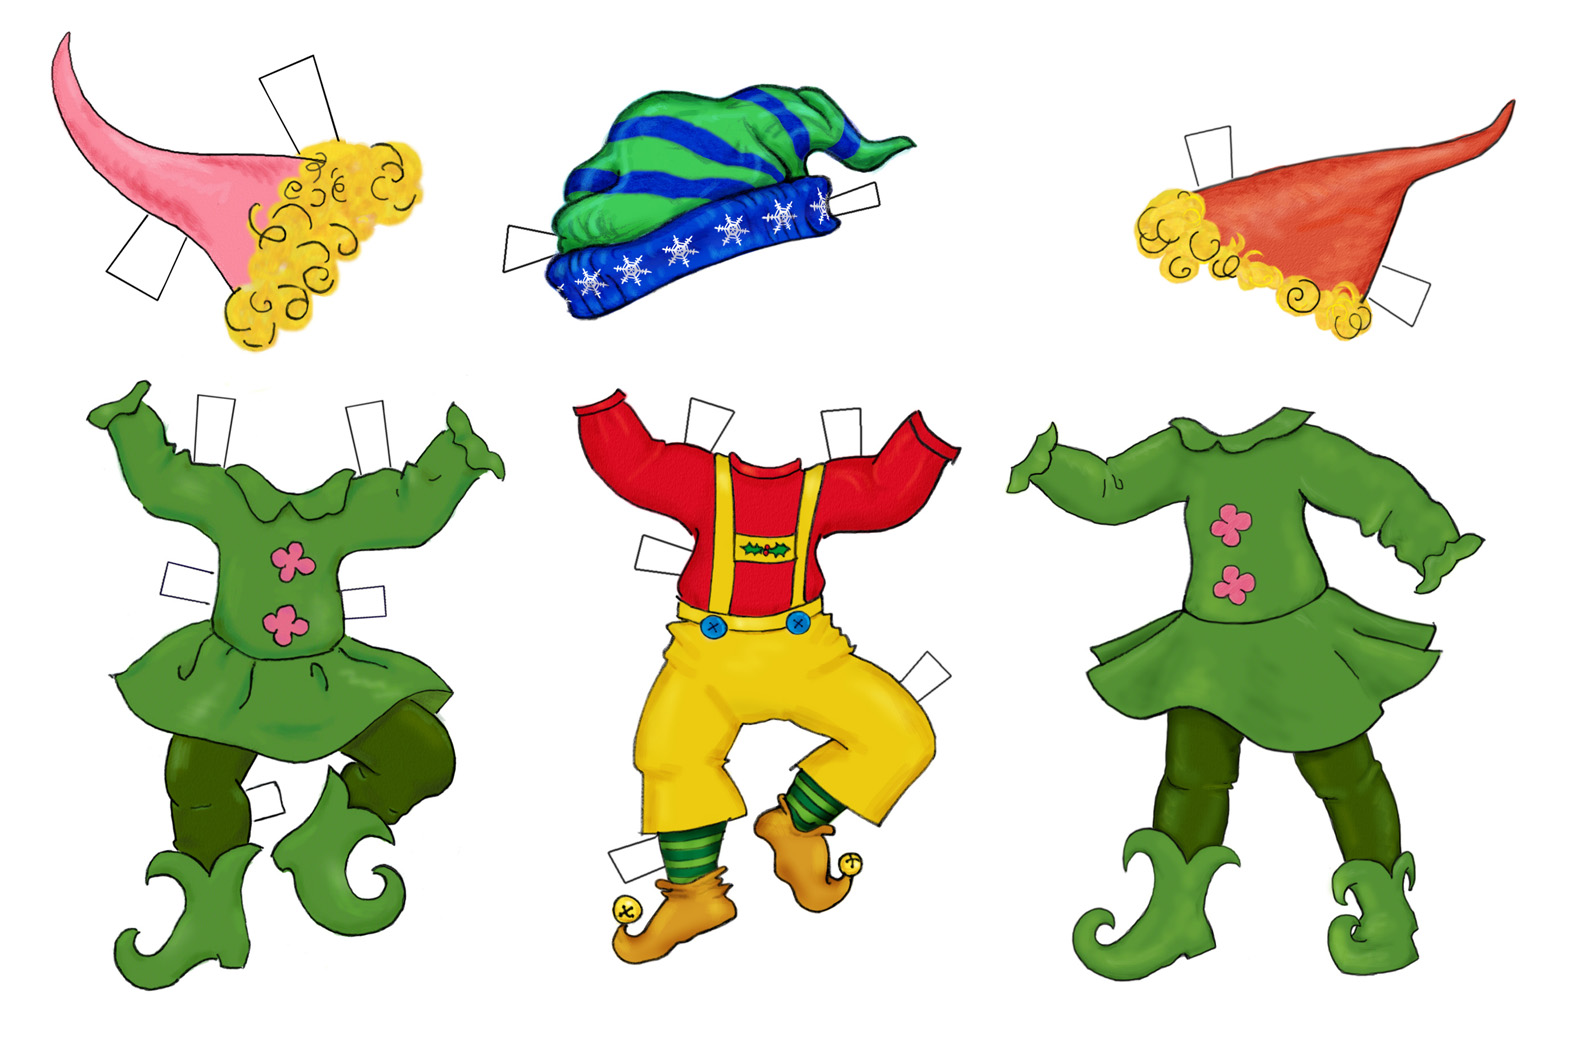 Body clipart elf, Body elf Transparent FREE for download on.